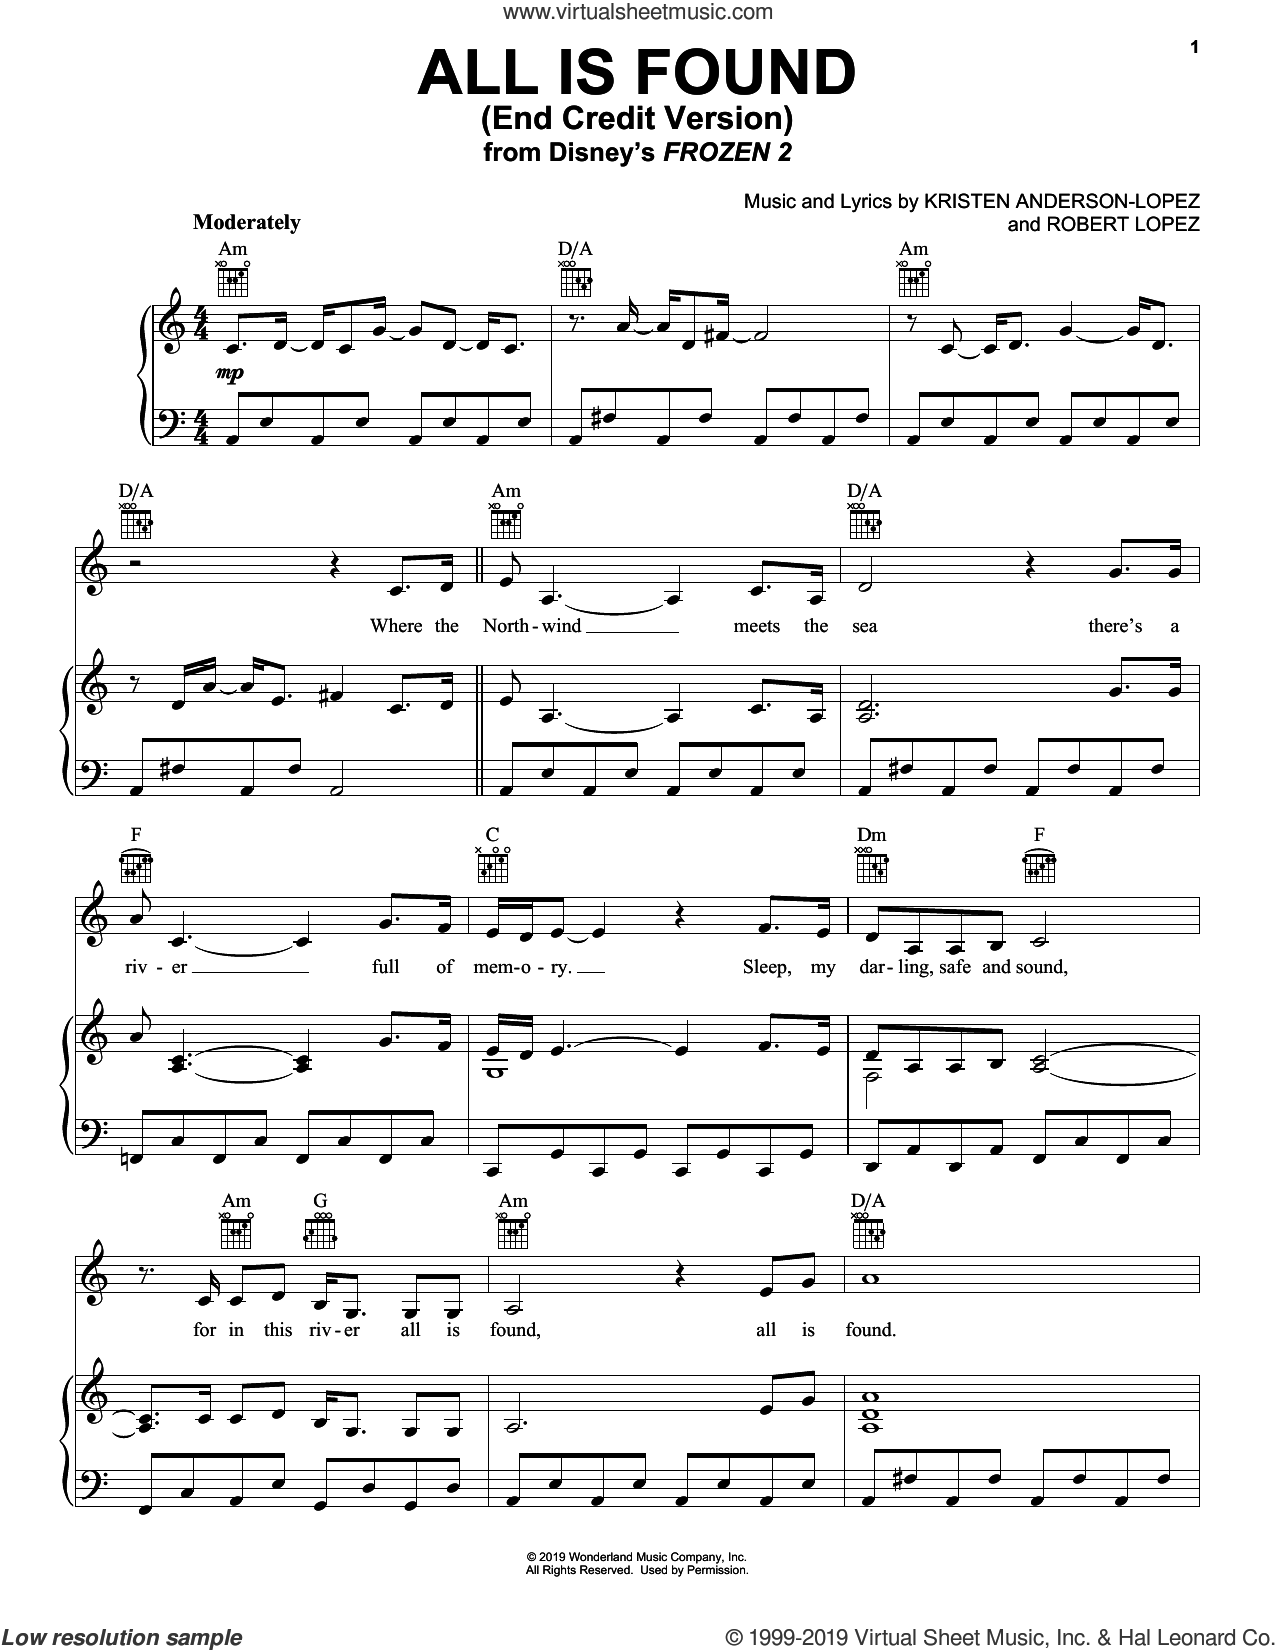 All Is Found (from Disney's Frozen 2) (End Credit Version) sheet music for voice, piano or guitar by Kacey Musgraves, Kristen Anderson-Lopez and Robert Lopez, intermediate skill level